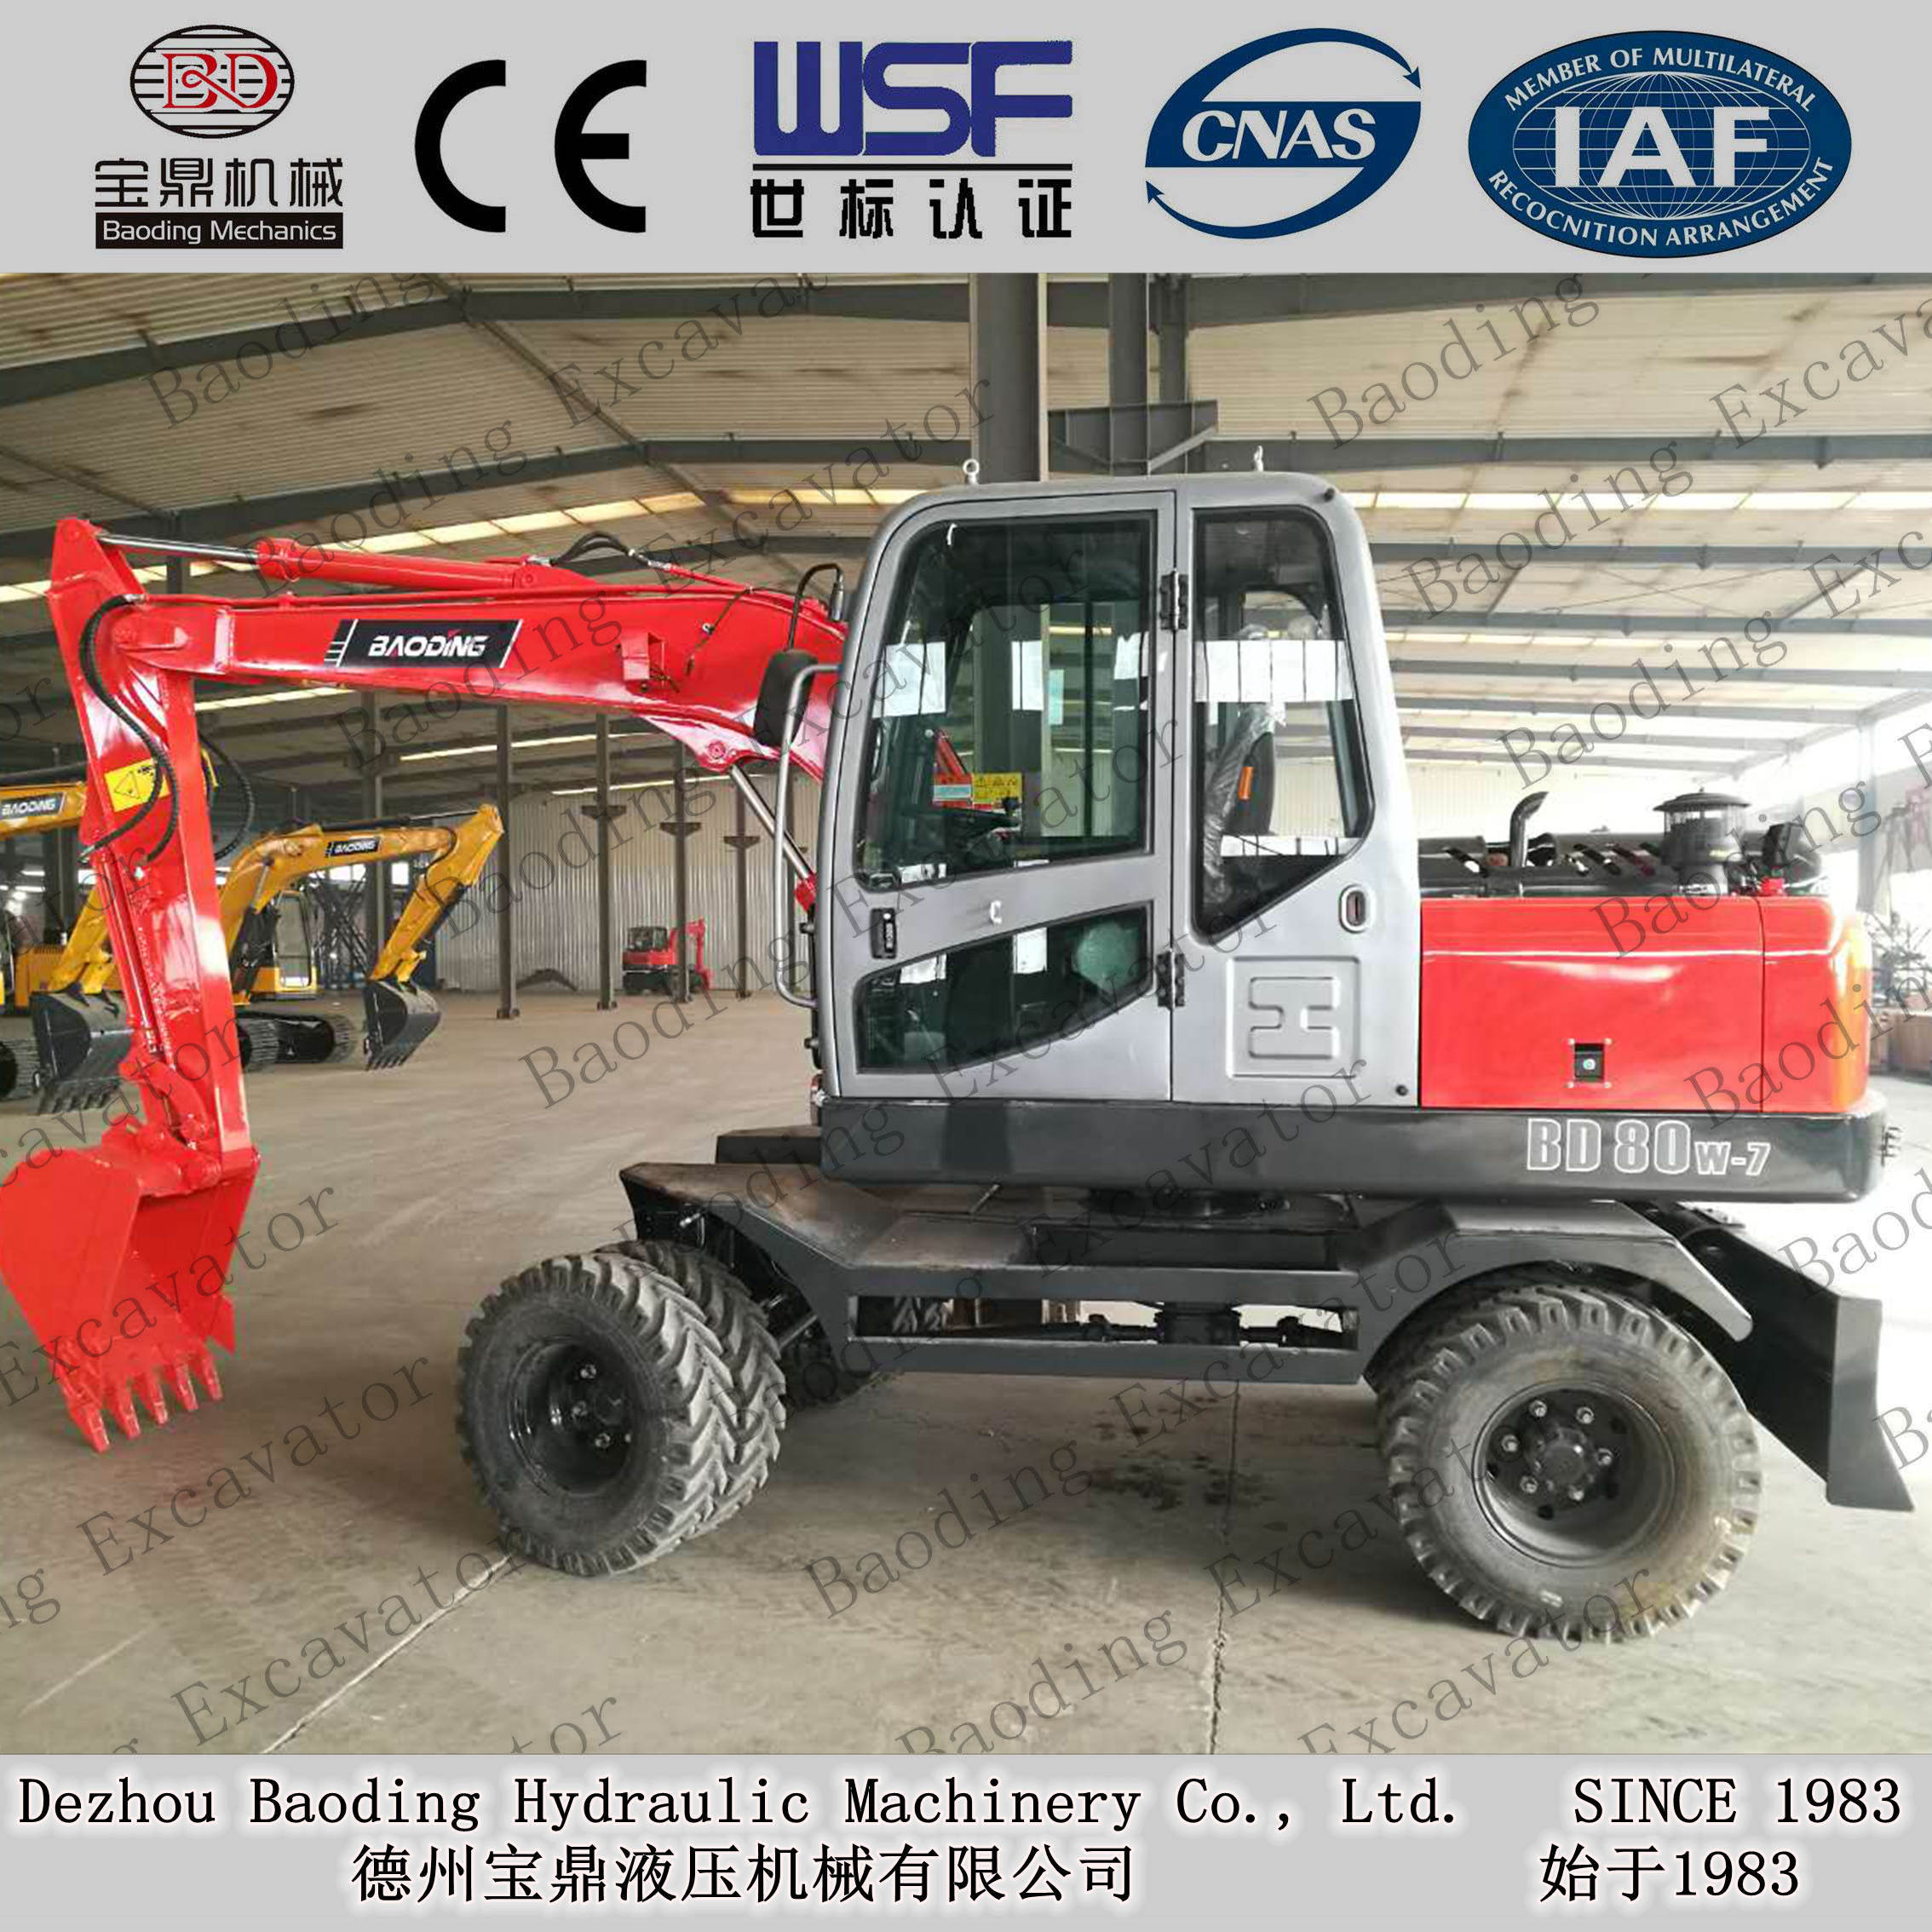 BD80 wheel excavator with ISO9001 certificate